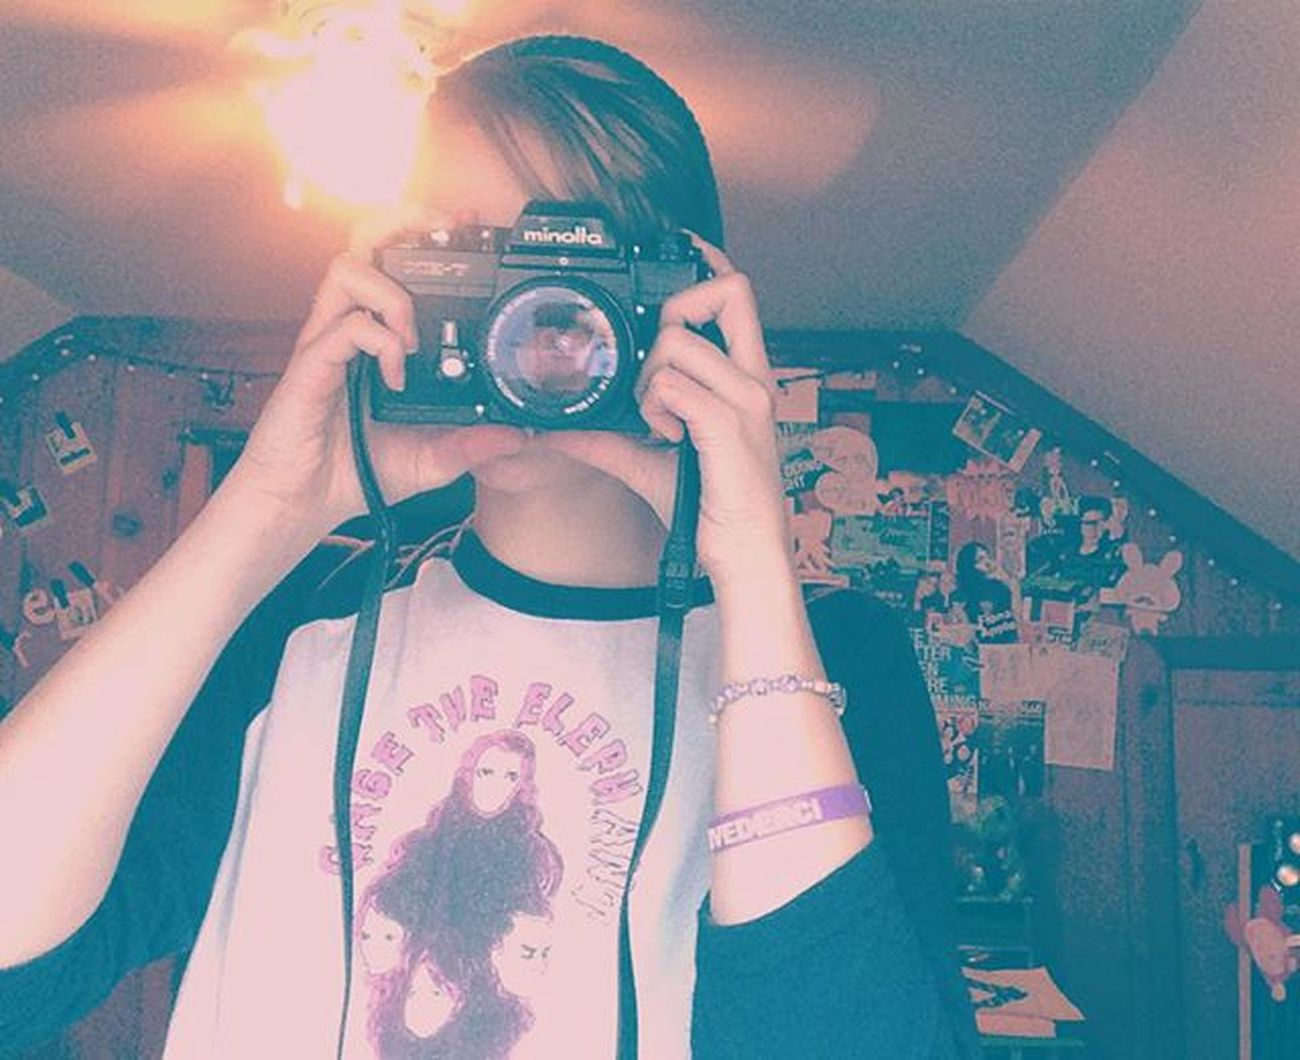 "Am I considered a ""cool kid"" now? Minolta Minoltaxe7 Minoltacamera Filmcamera Film Camera Photography Filmphotography Fun Rhetoric Rhetoricalquestion Rhetorical Cool Coolkid Coolkids Filmisnotdead Filmcamera 35mm 35mmphotography"